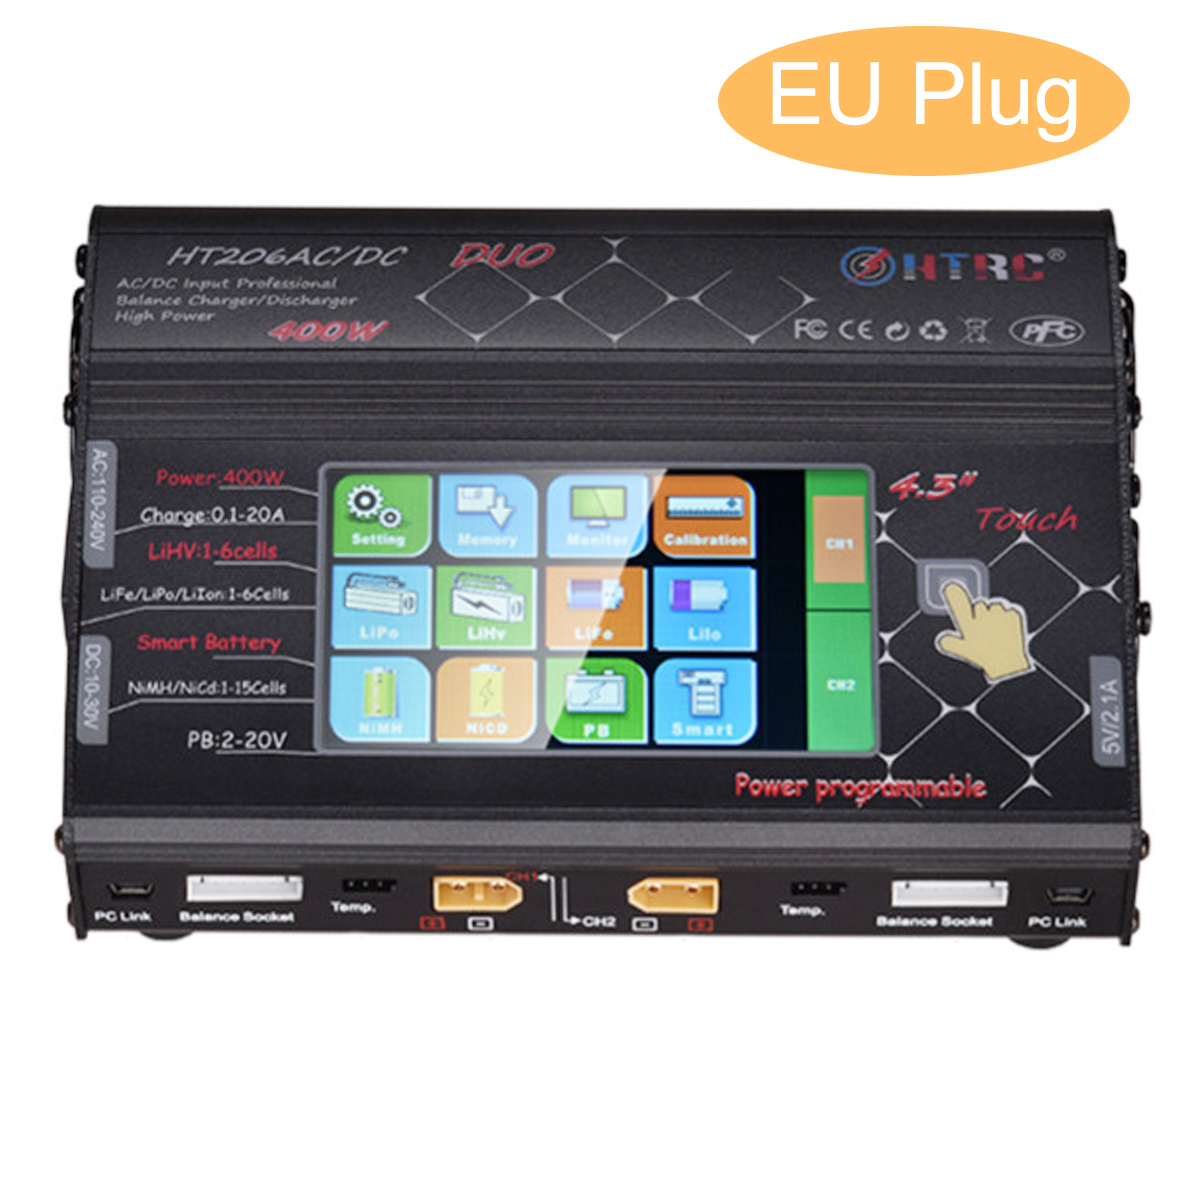 2018 New HTRC HT206 AC/DC Touch screen RC Balance Charger for Li ion Battery EU Plug